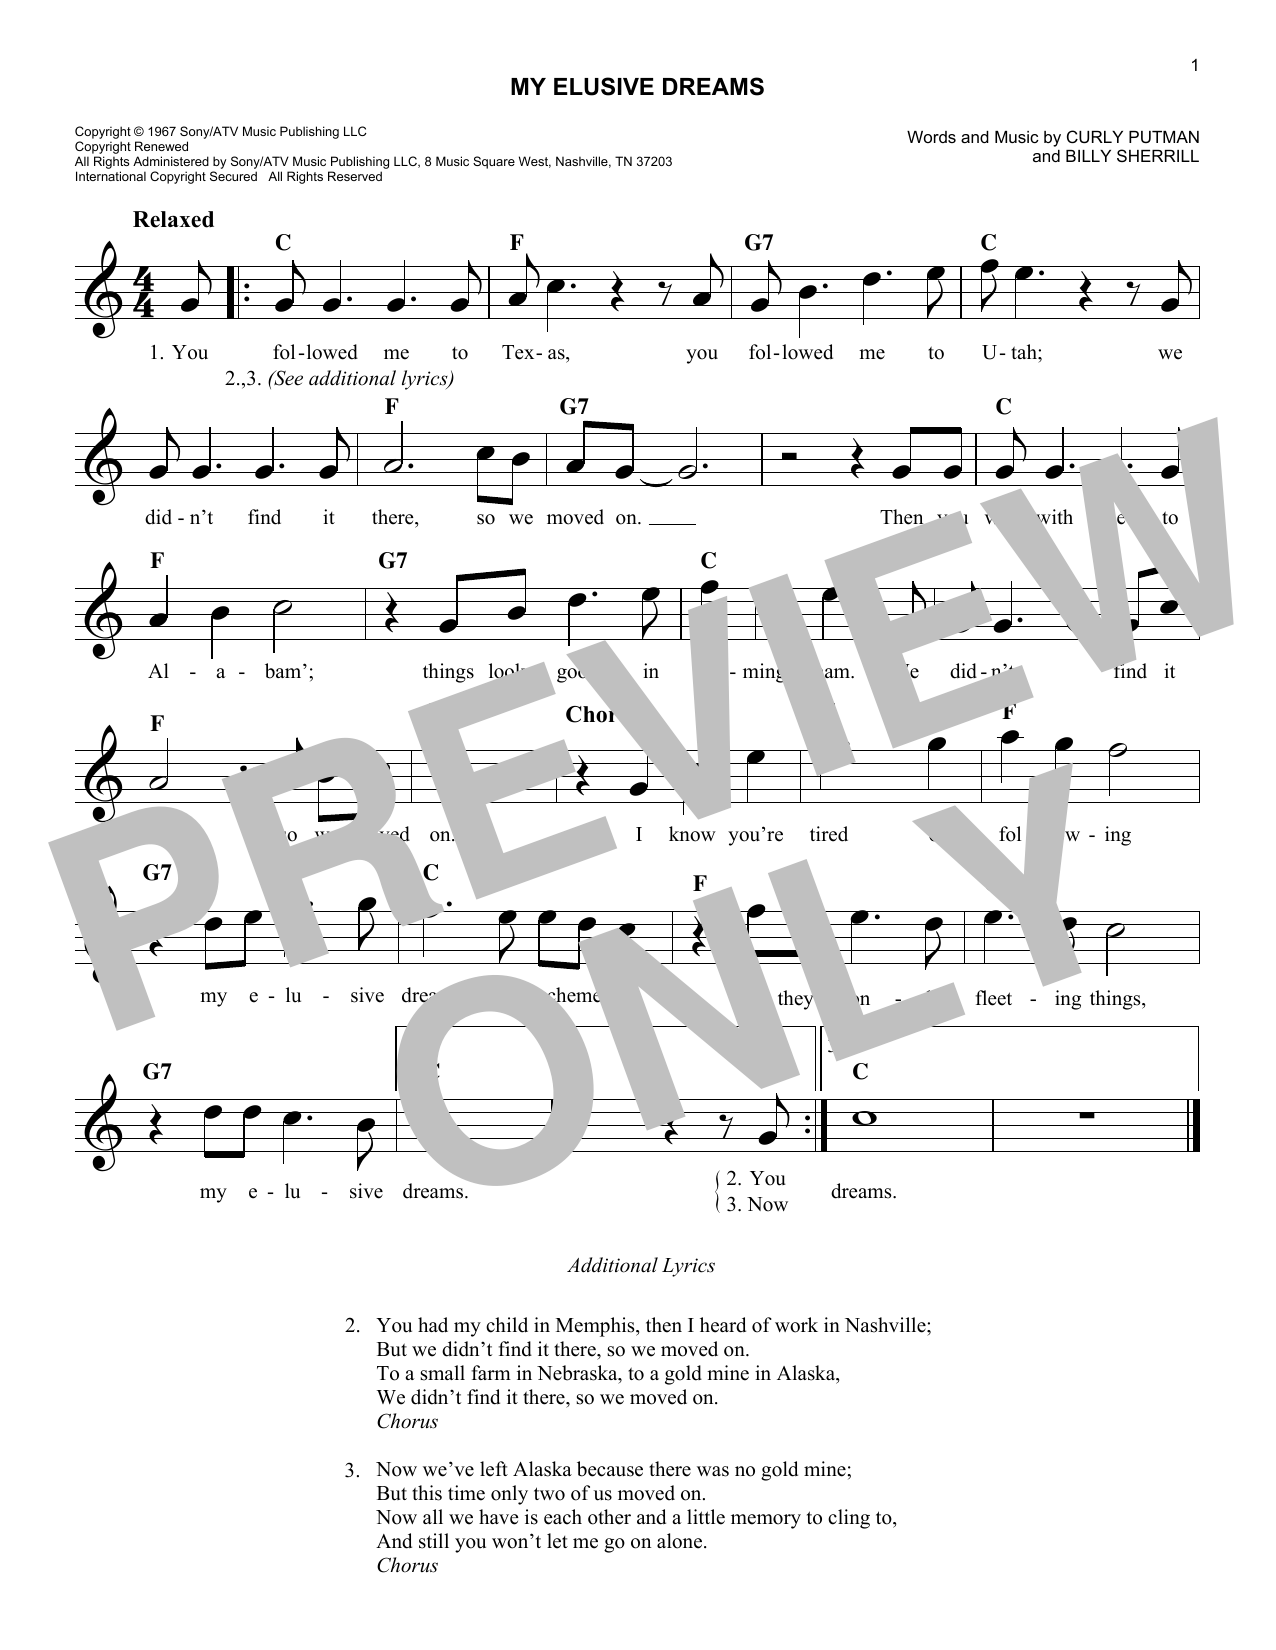 My Elusive Dreams Sheet Music